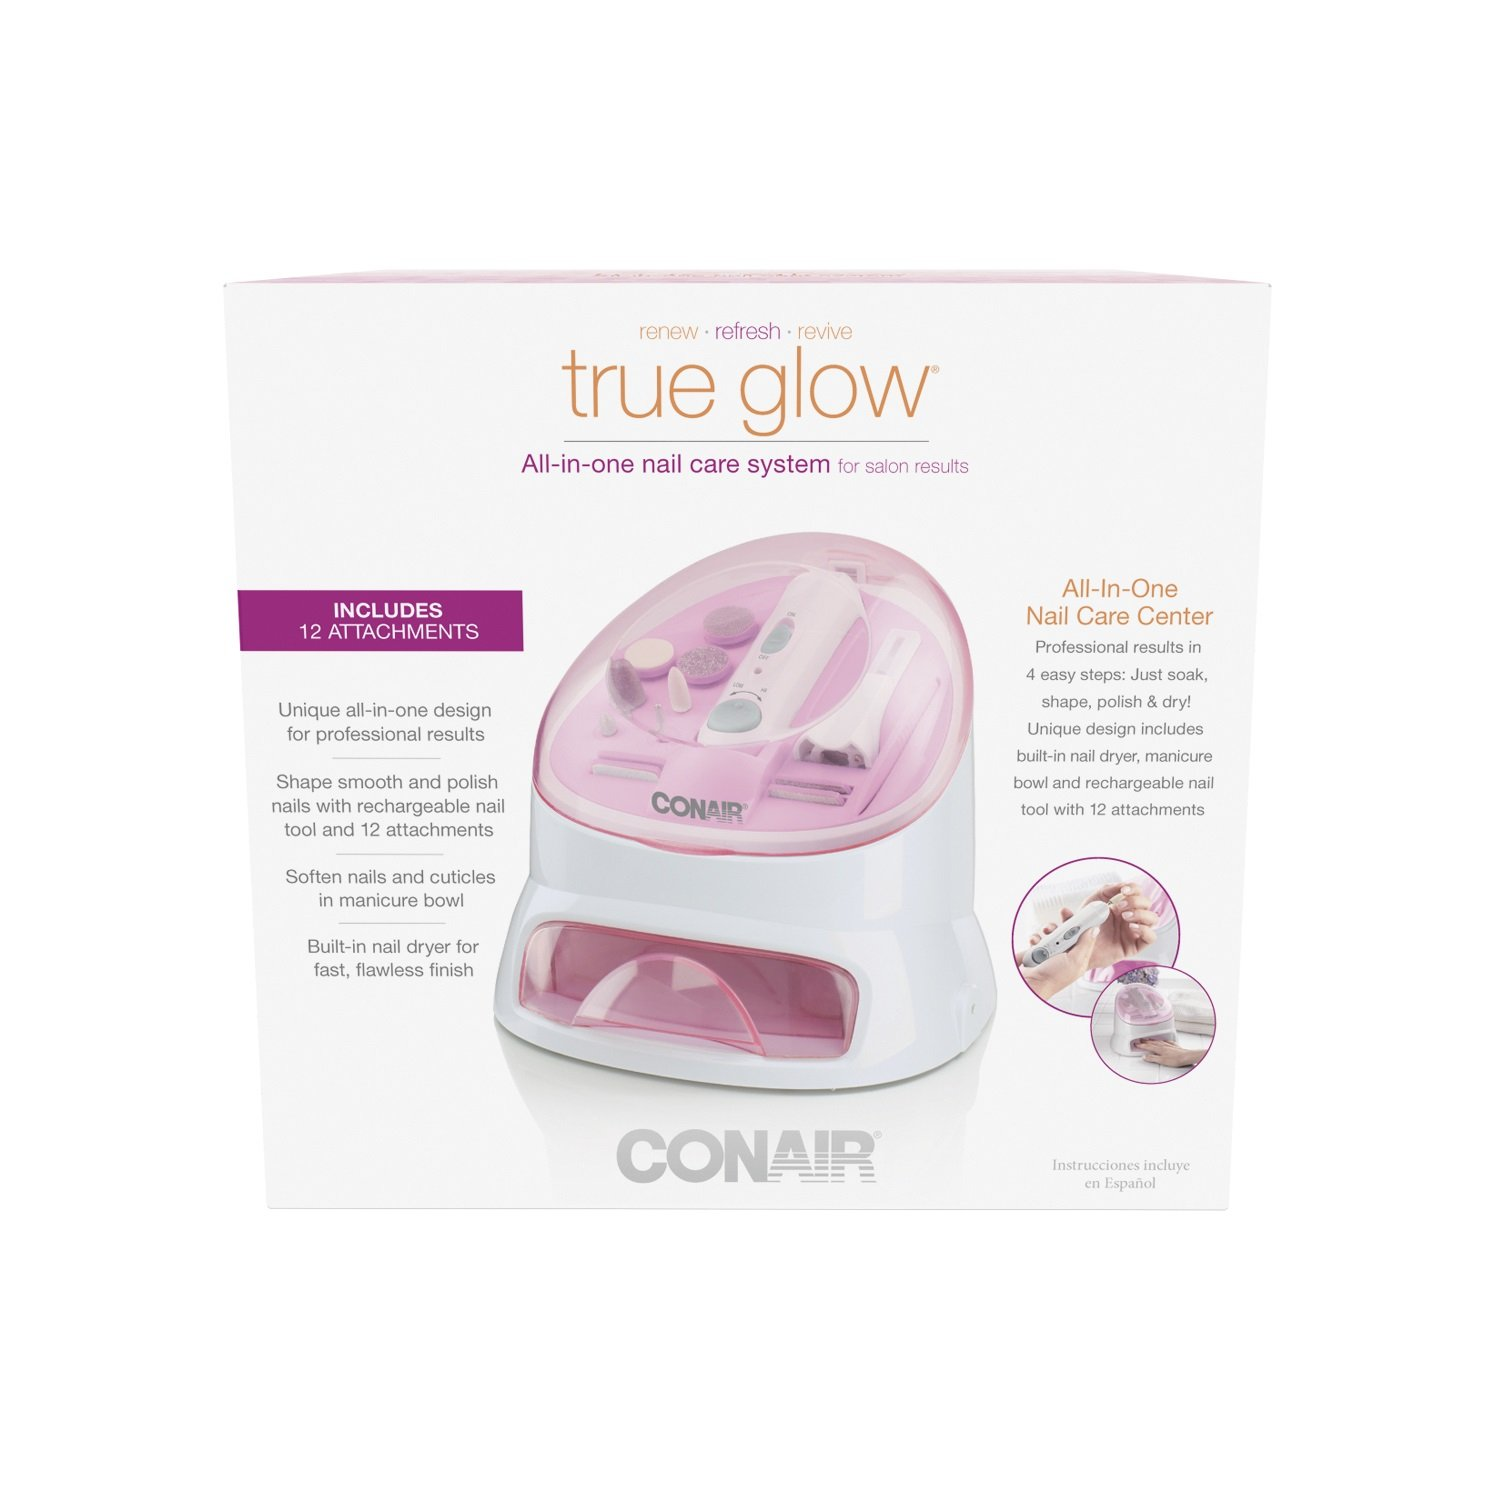 Amazon.com : True Glow by Conair All-in-One Nail Care Center : Beauty